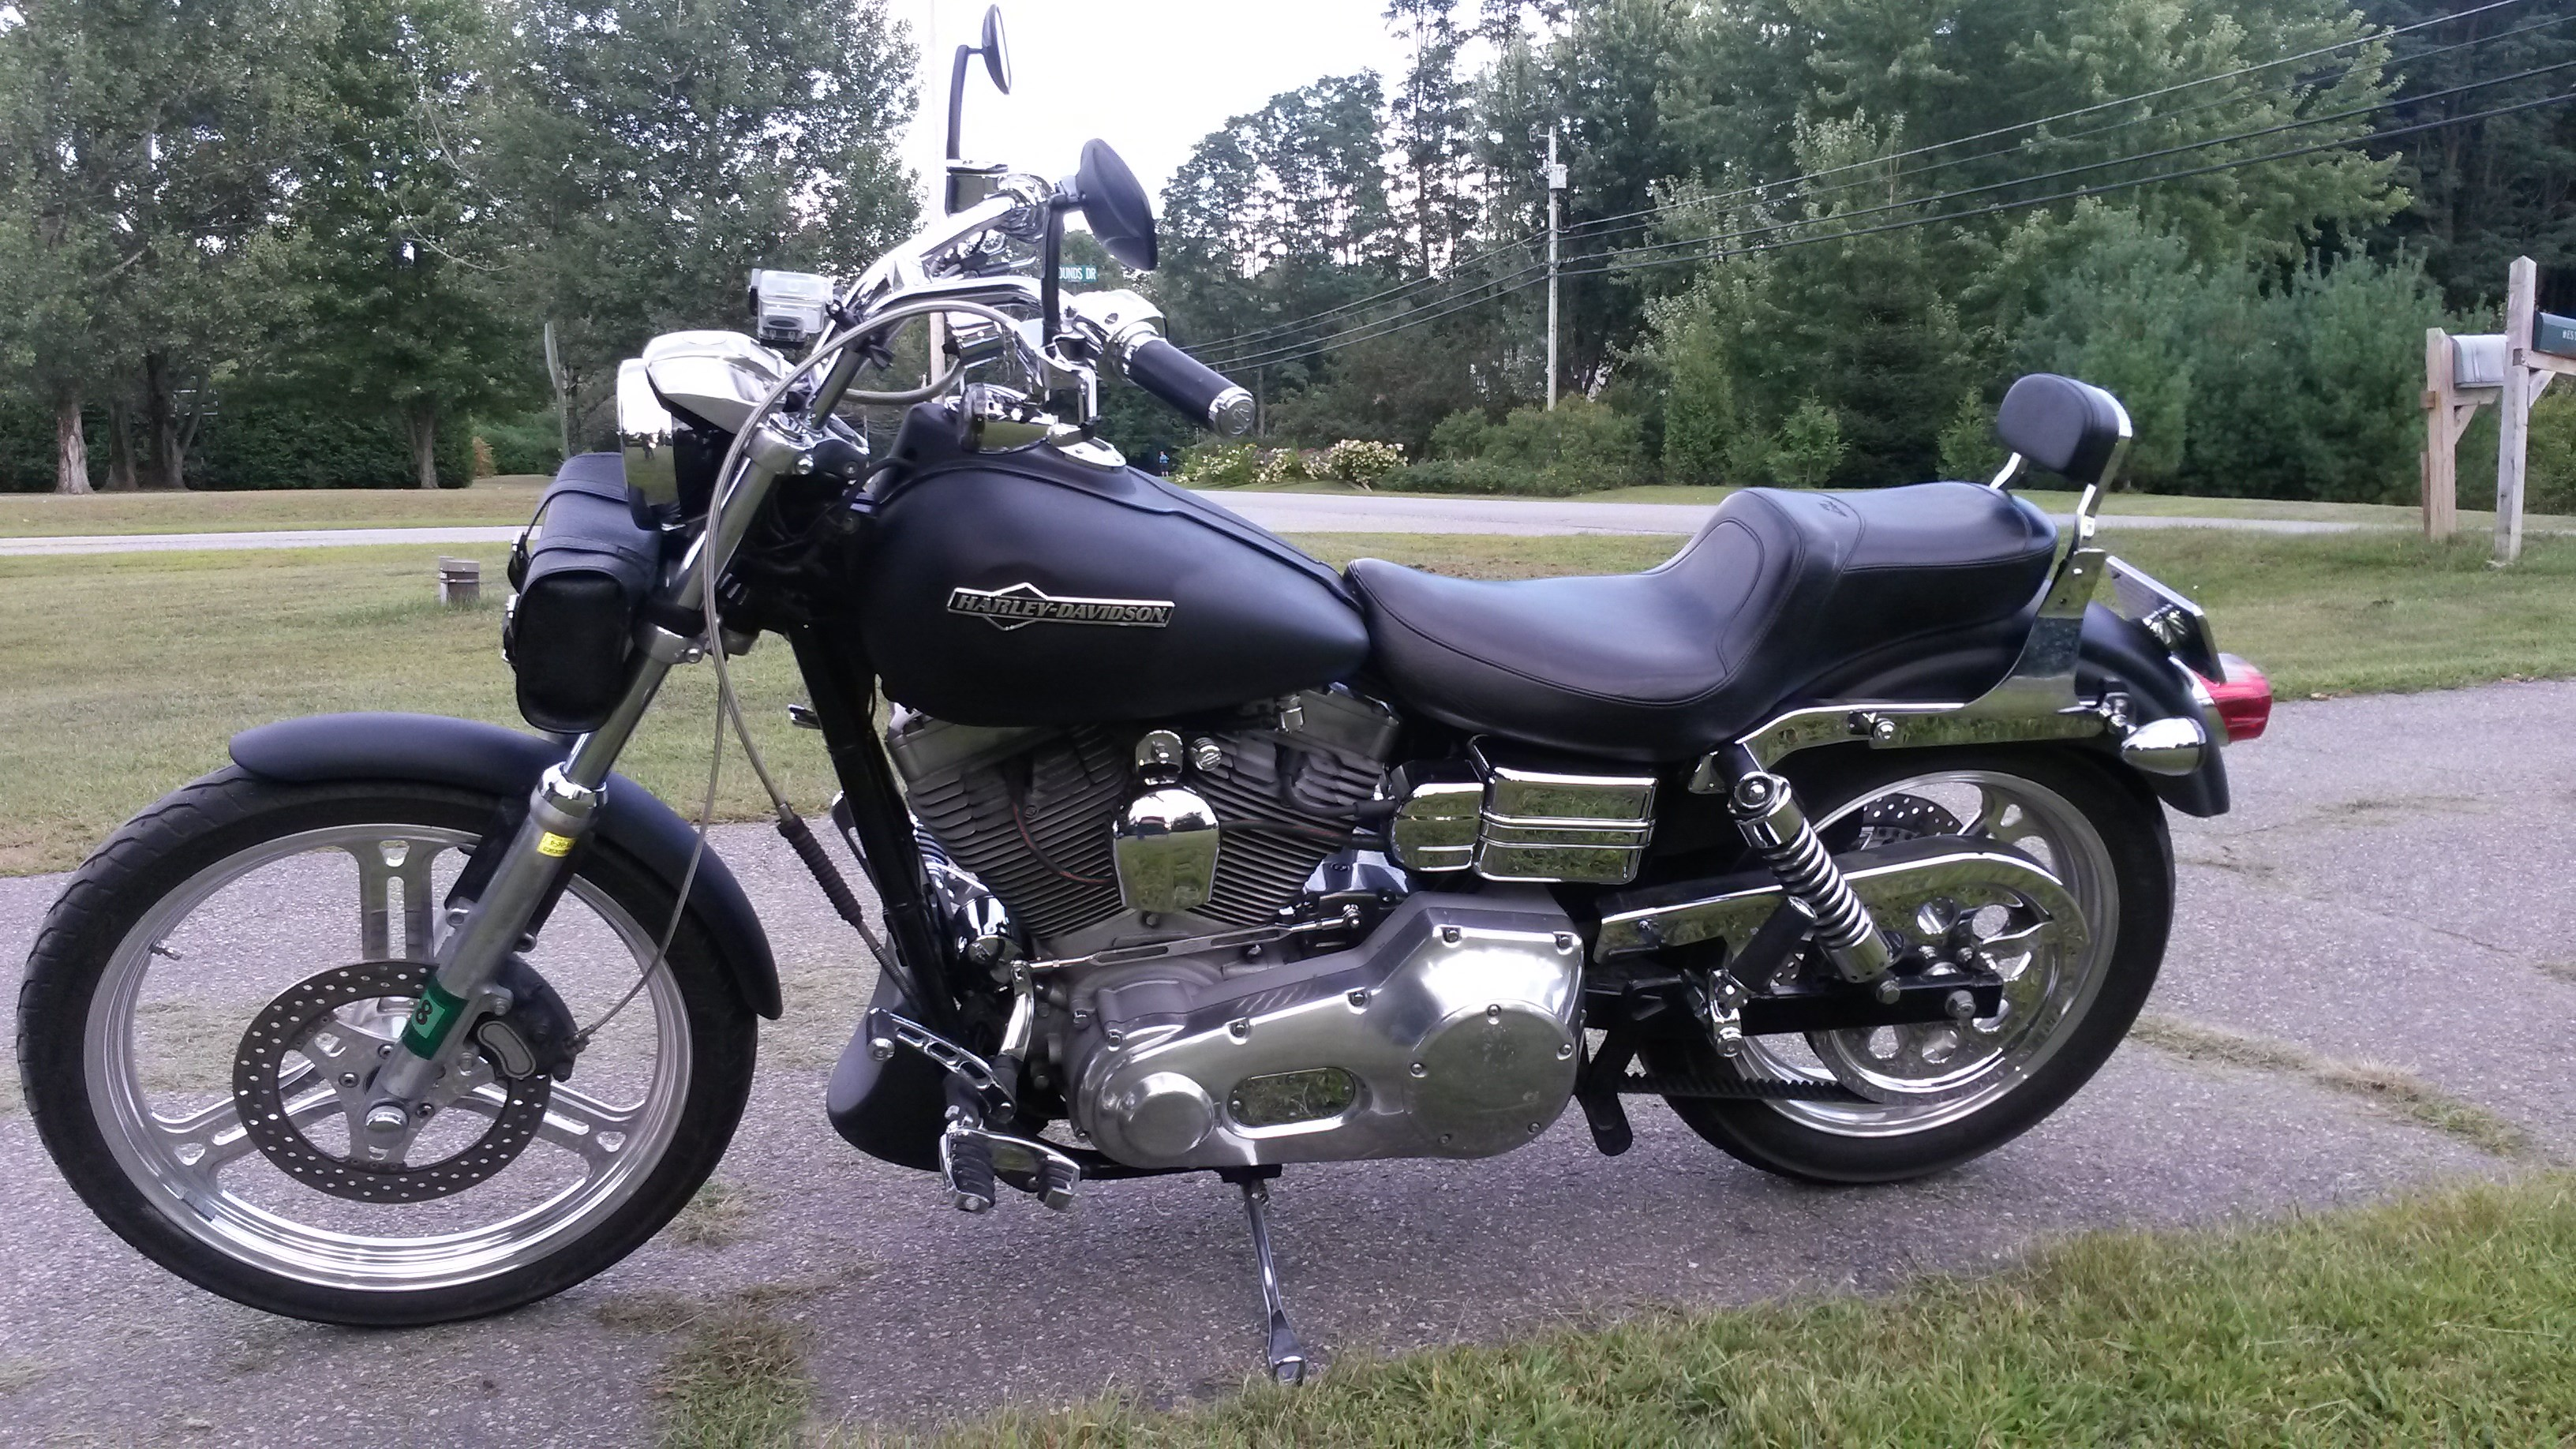 Dyna For Sale San Marcos Ca >> 2002 Harley-Davidson® FXD Dyna Super Glide® (Black), Milton, Vermont (579896) | CycleCrunch